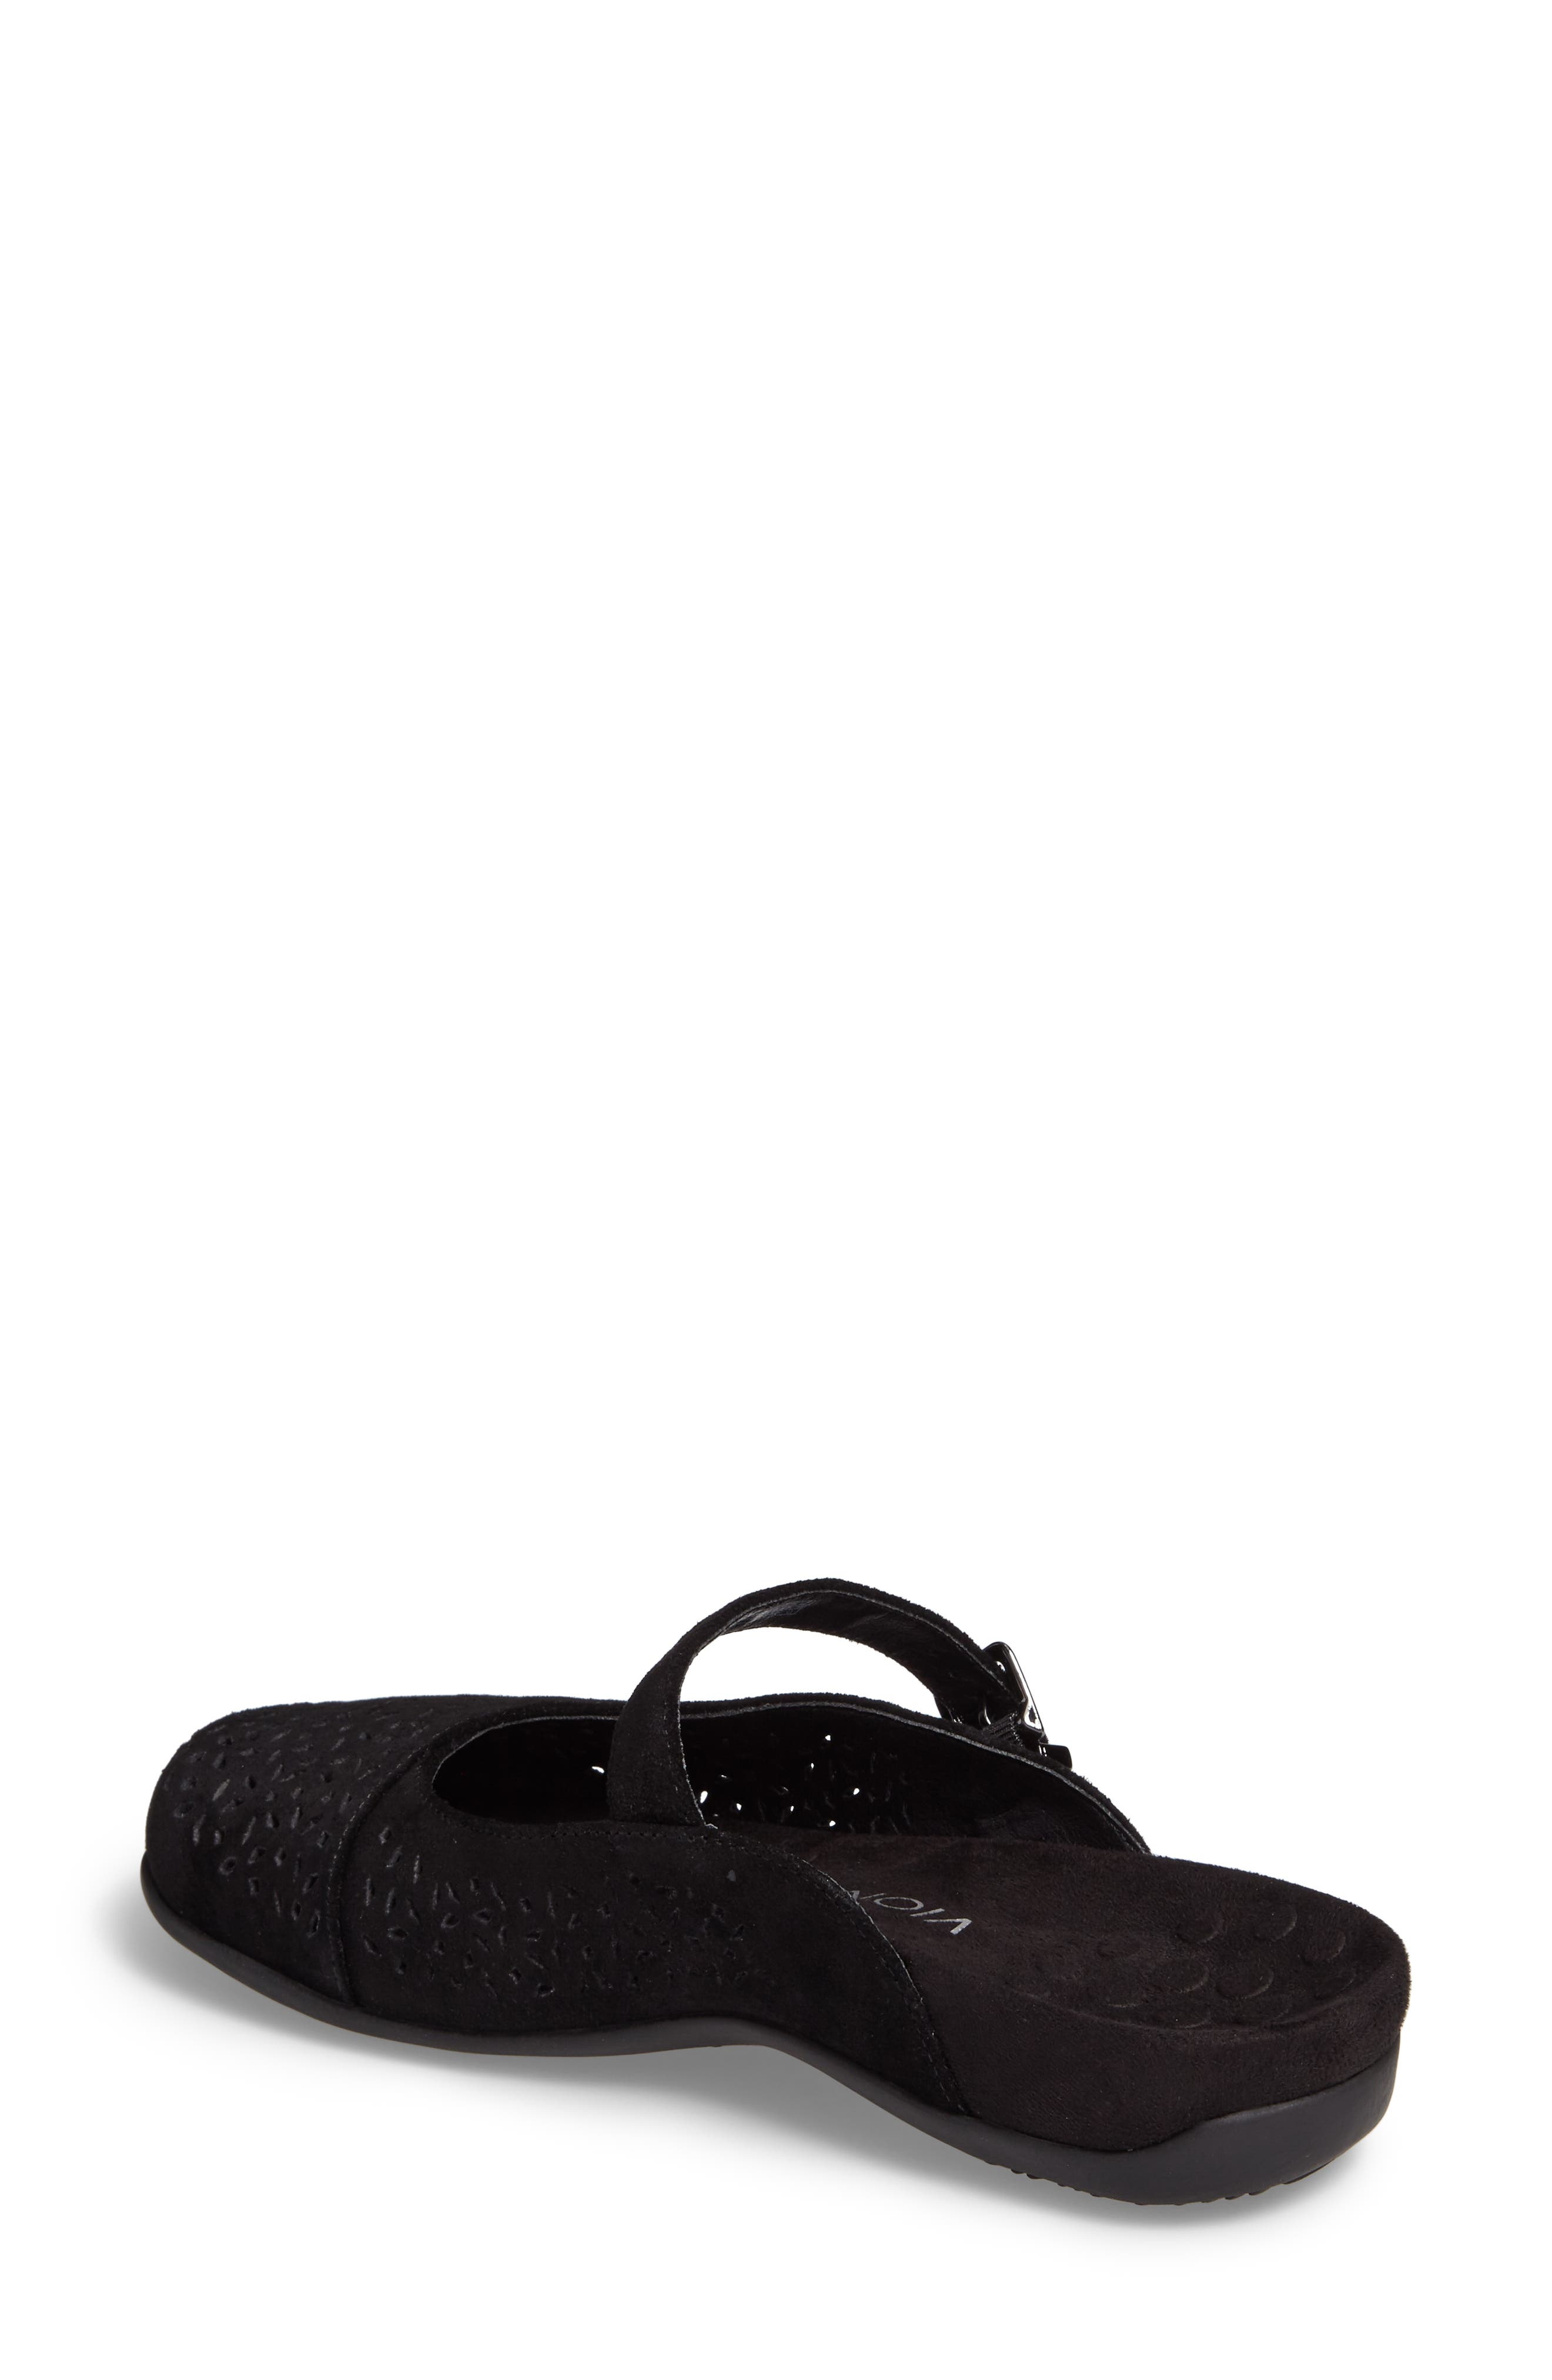 Rest Lidia Perforated Mary Jane Mule,                             Alternate thumbnail 2, color,                             BLACK SUEDE